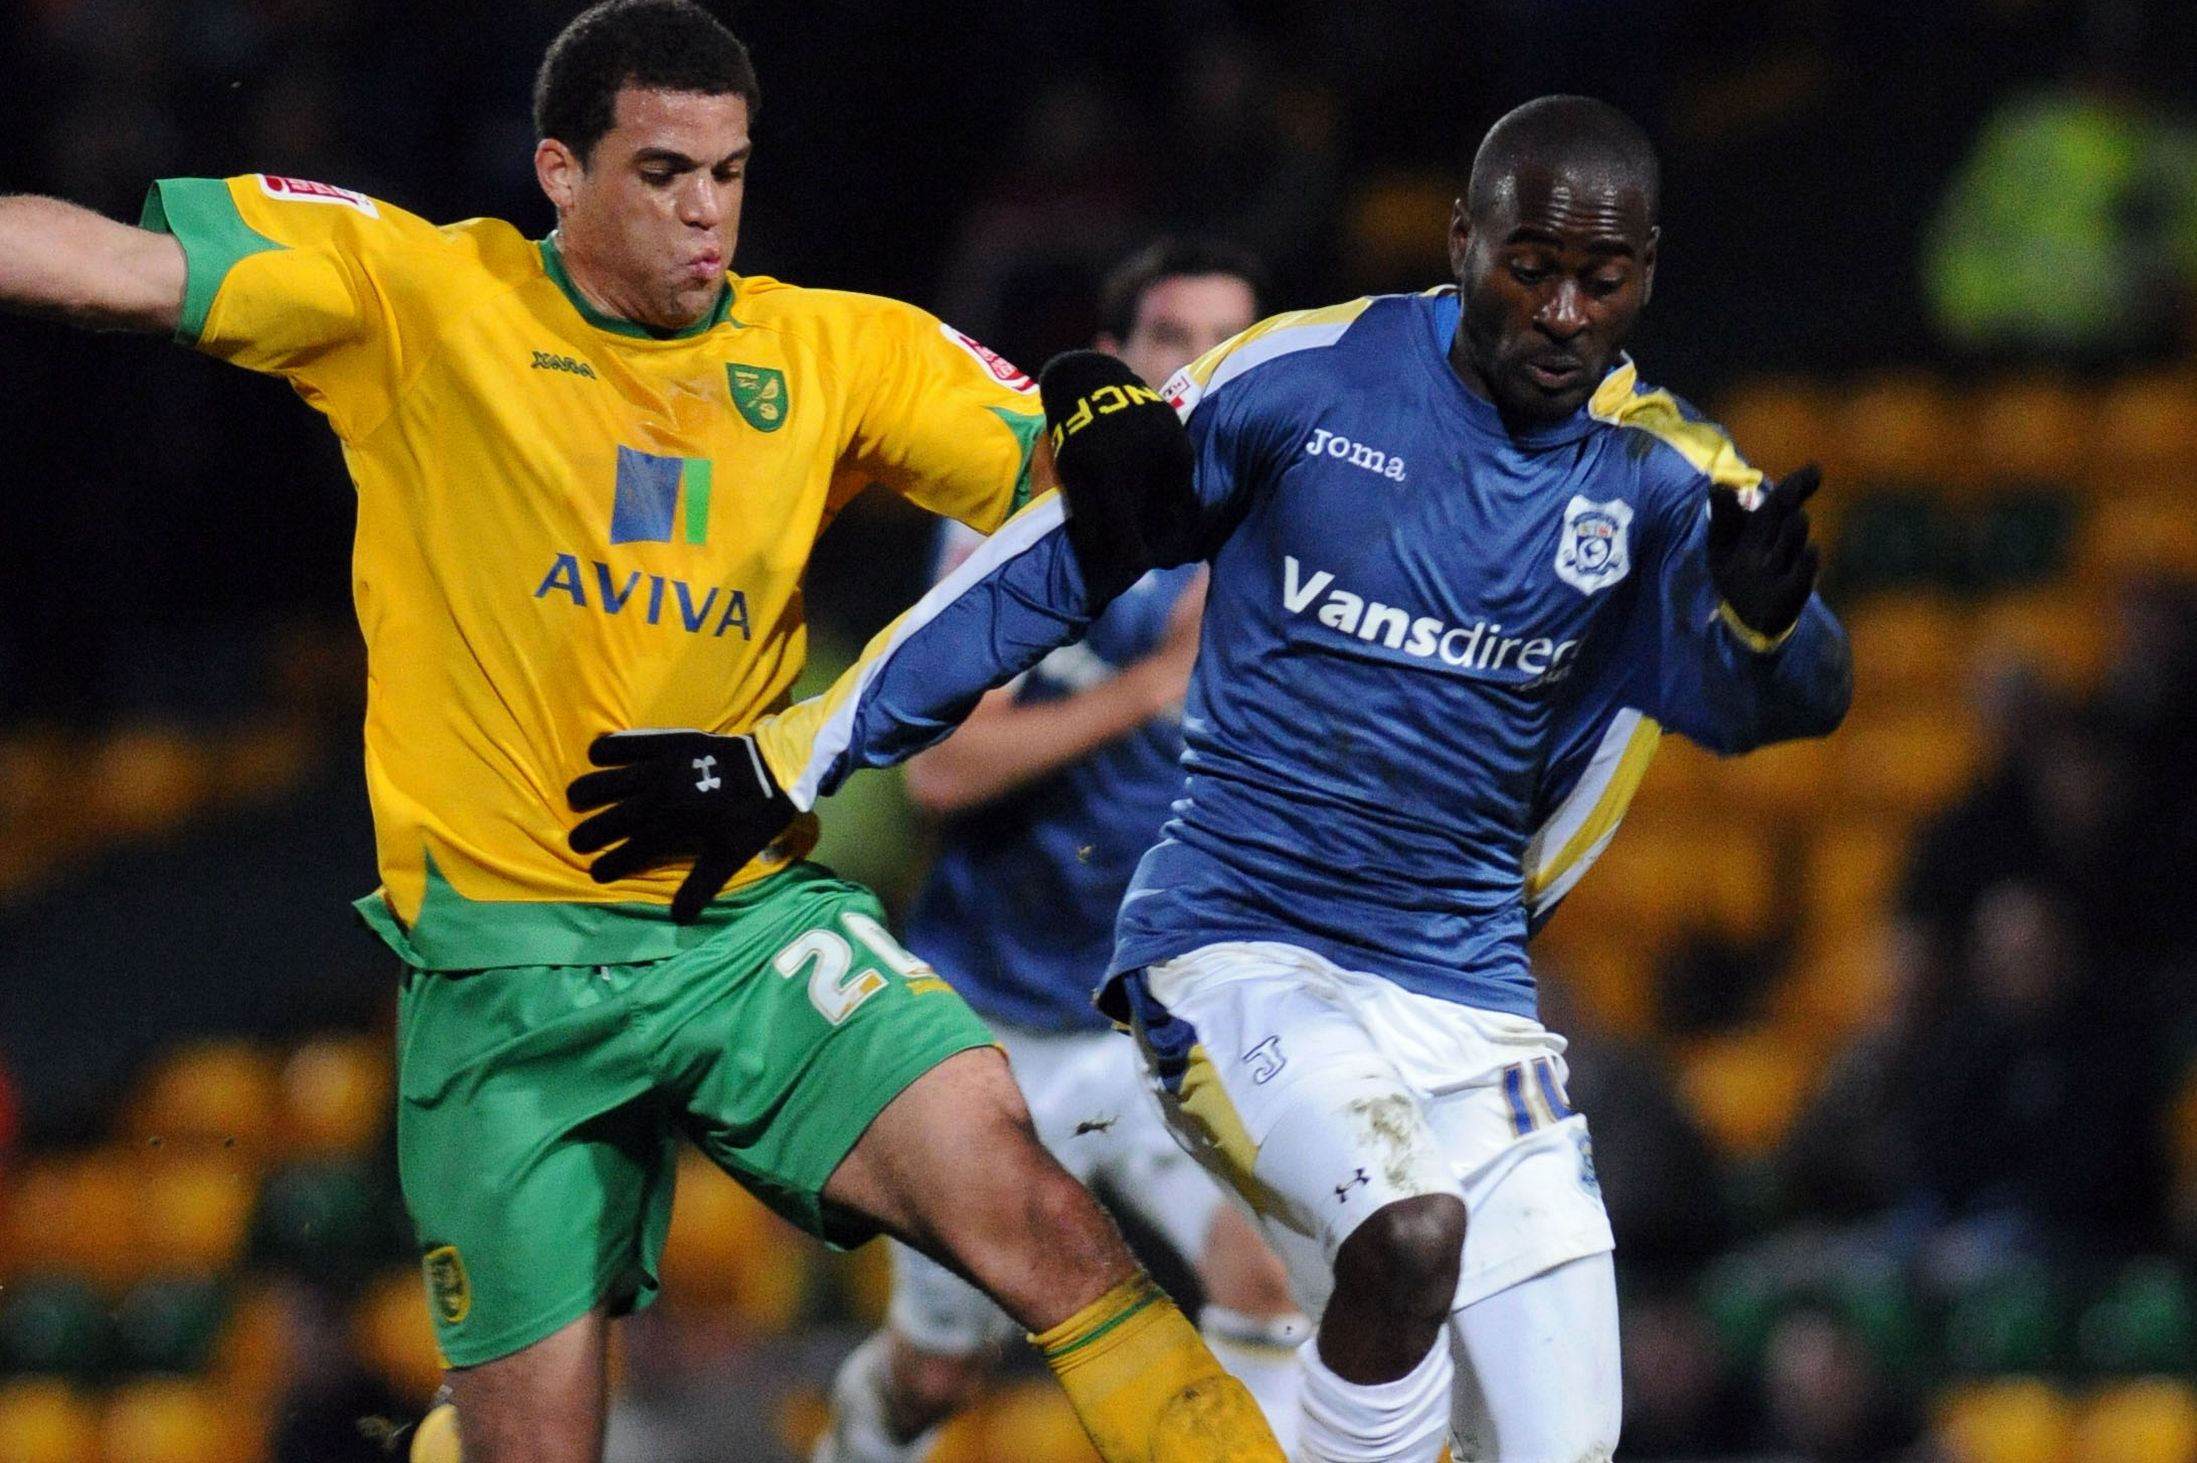 Quincy Owusu Abeyie has been rated as failure at Cardiff City